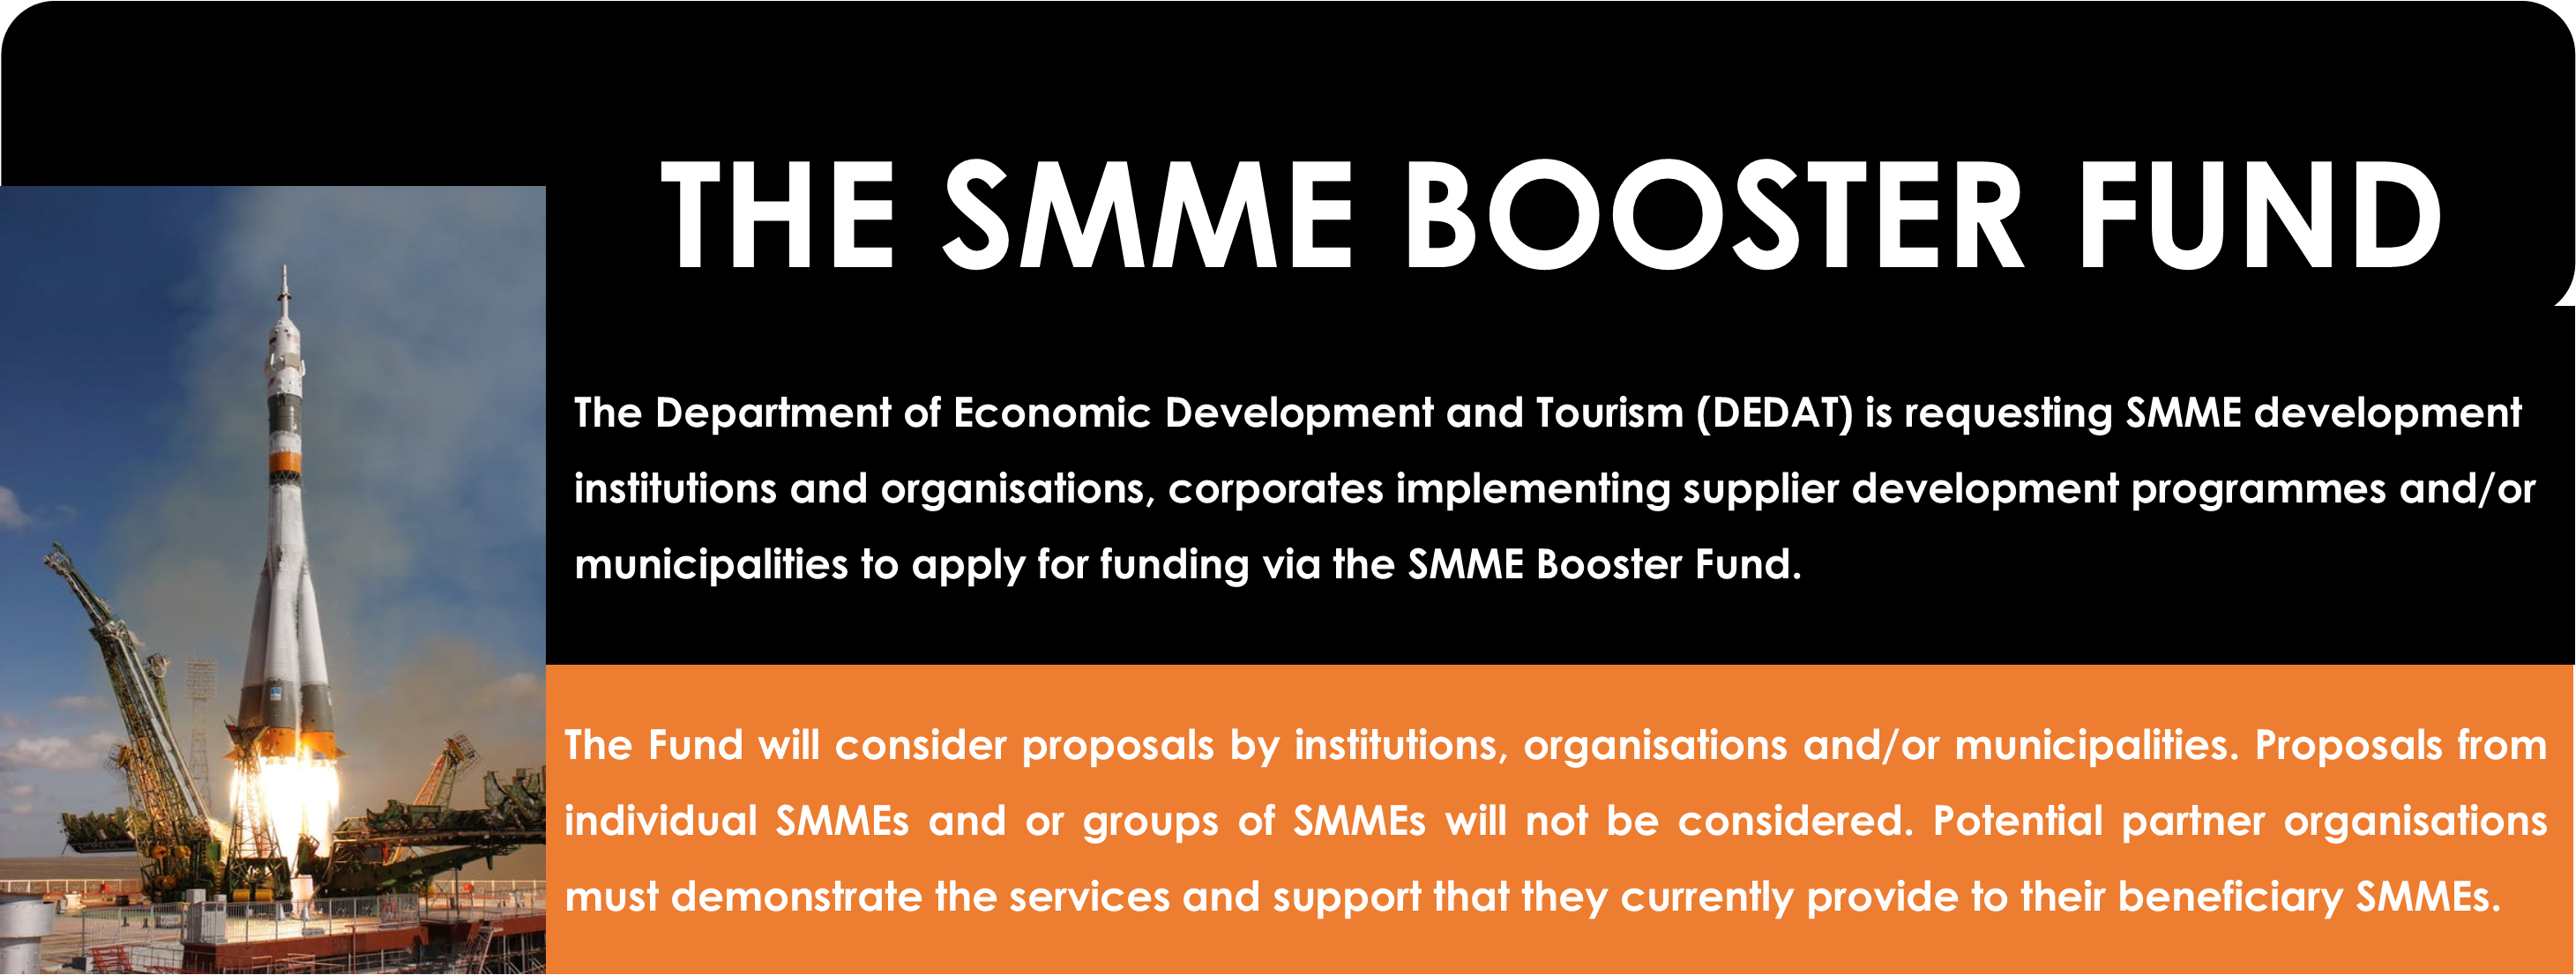 smme_booster_fund_landing_page_update_14_june_2019.png